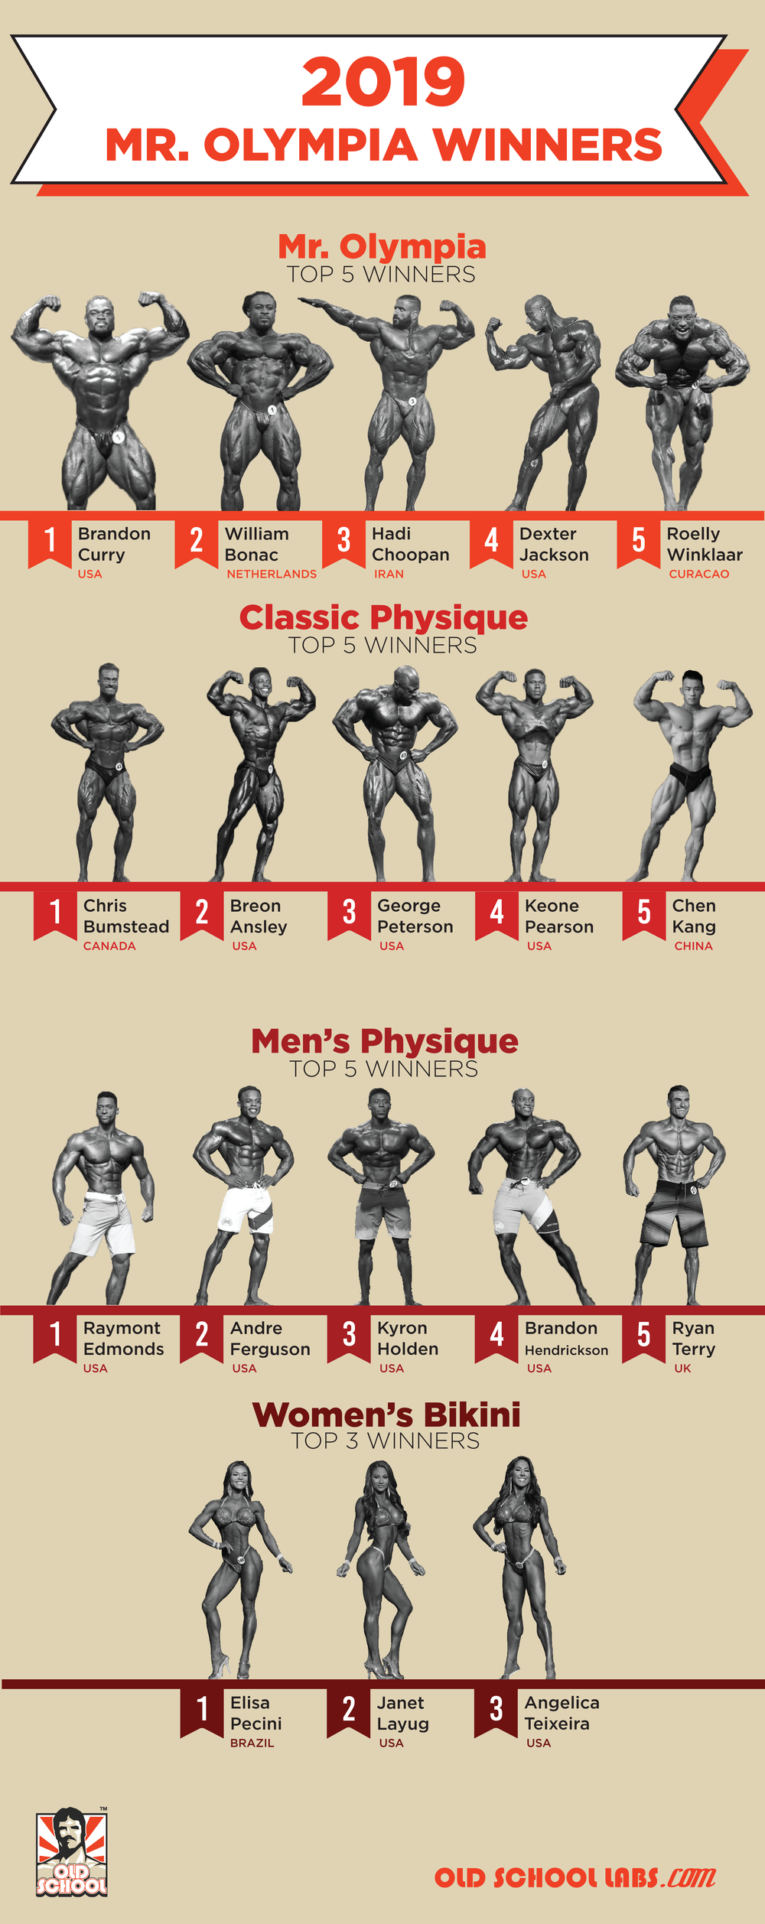 Mr. Olympia 2019 Winners Infographic